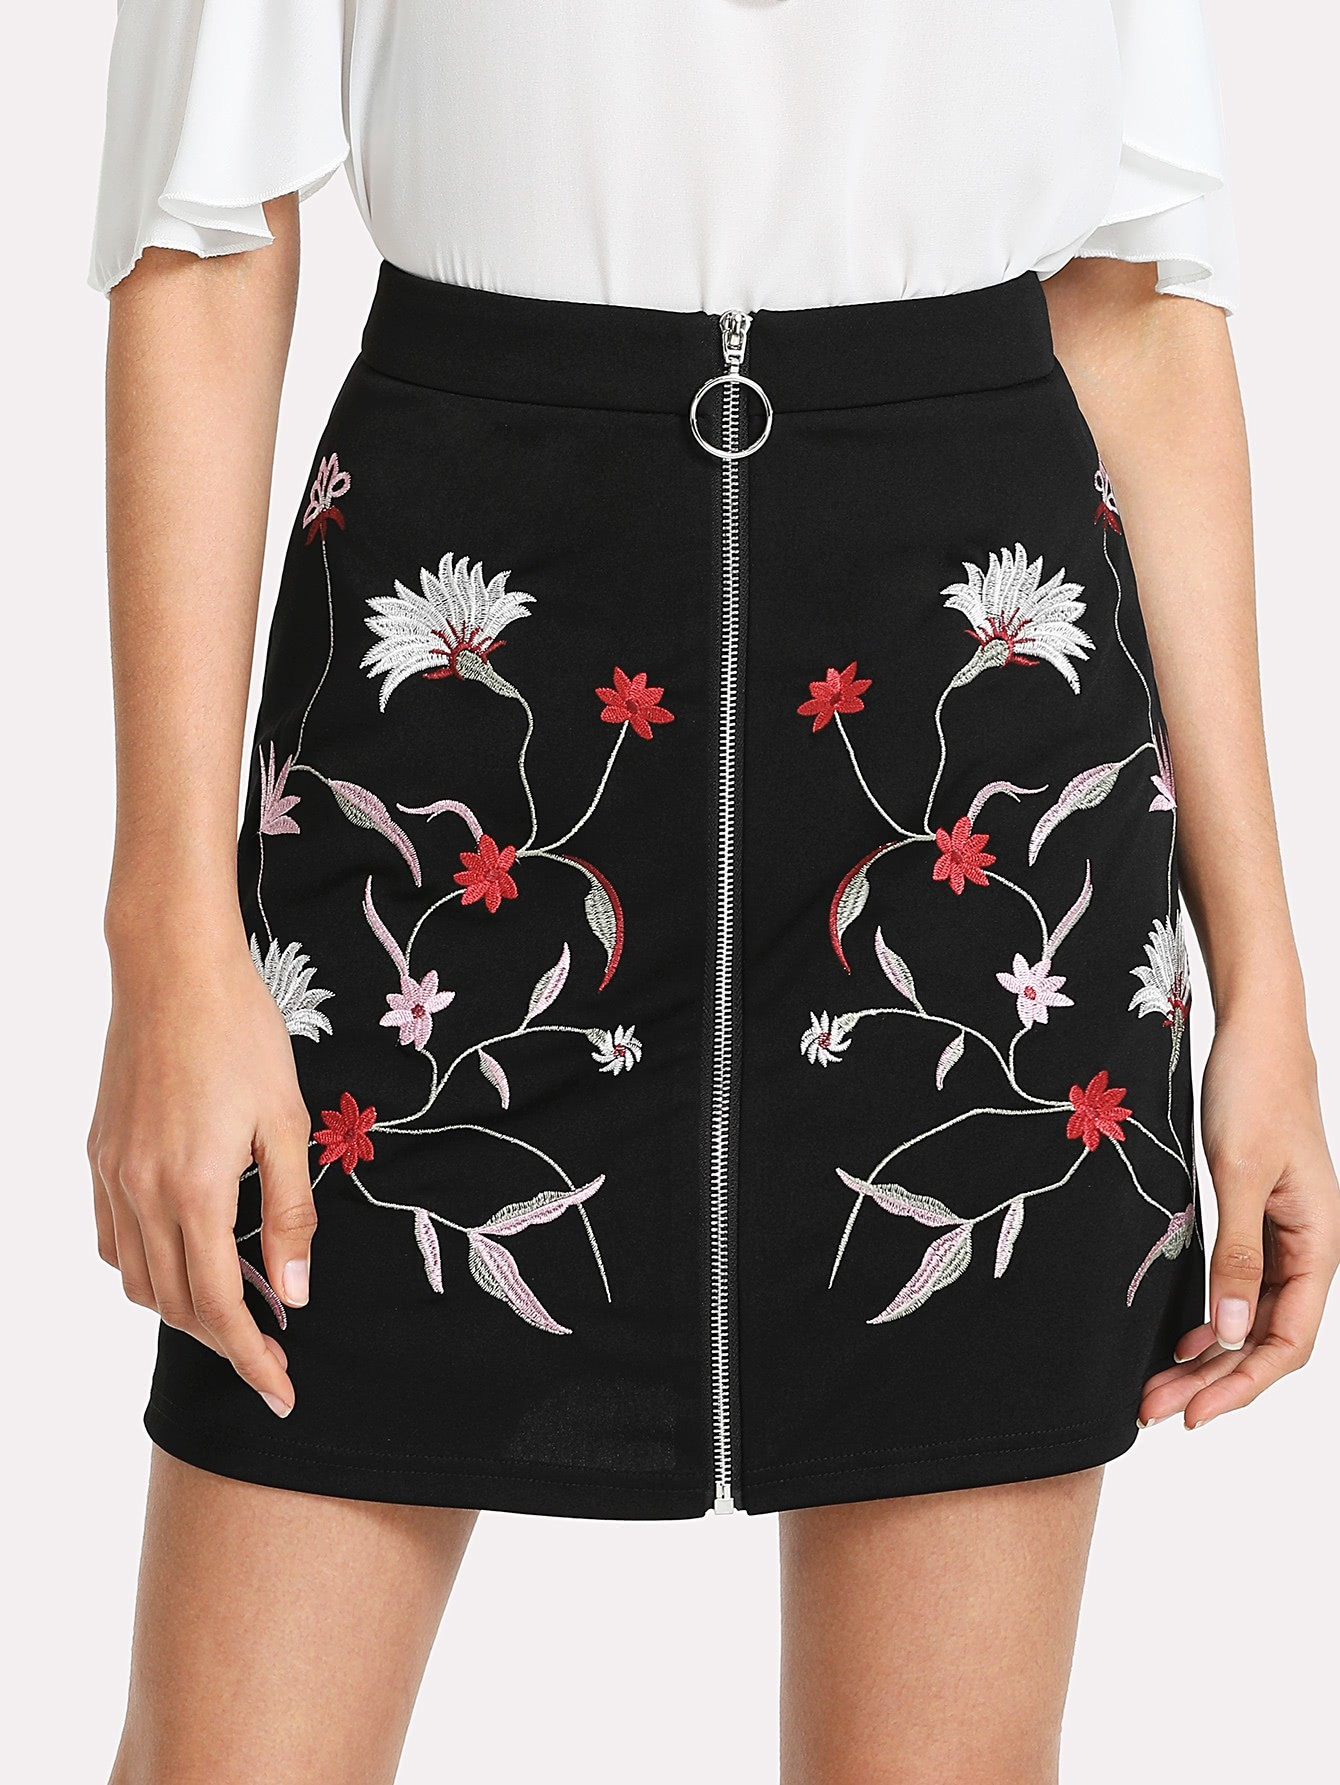 Botanical Embroidery Zipper Up Skirt